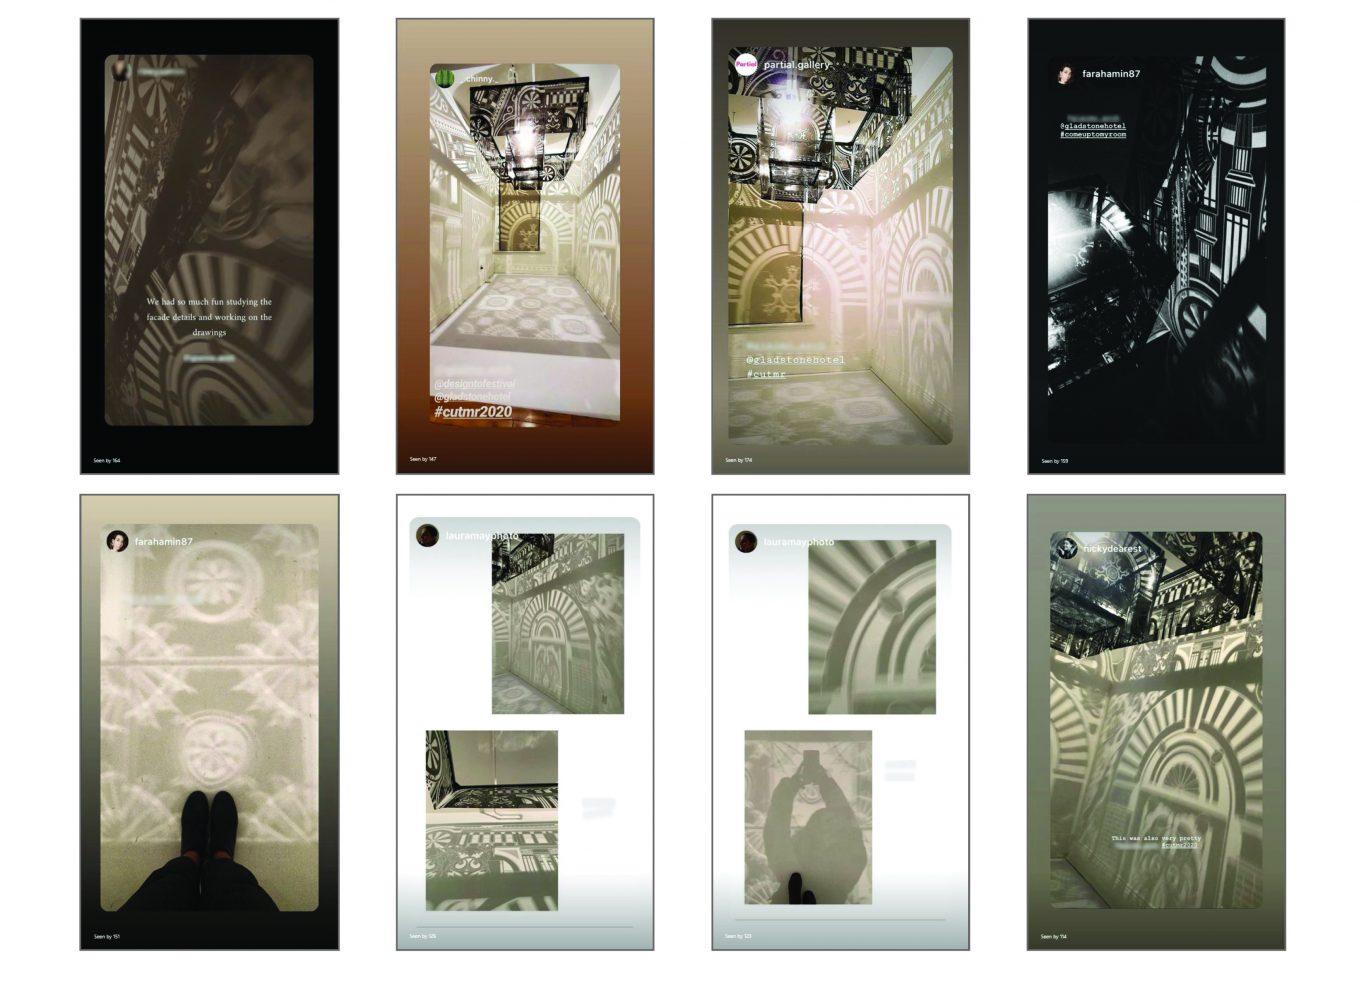 8 photos of shadow patterns by visitors to the exhibition